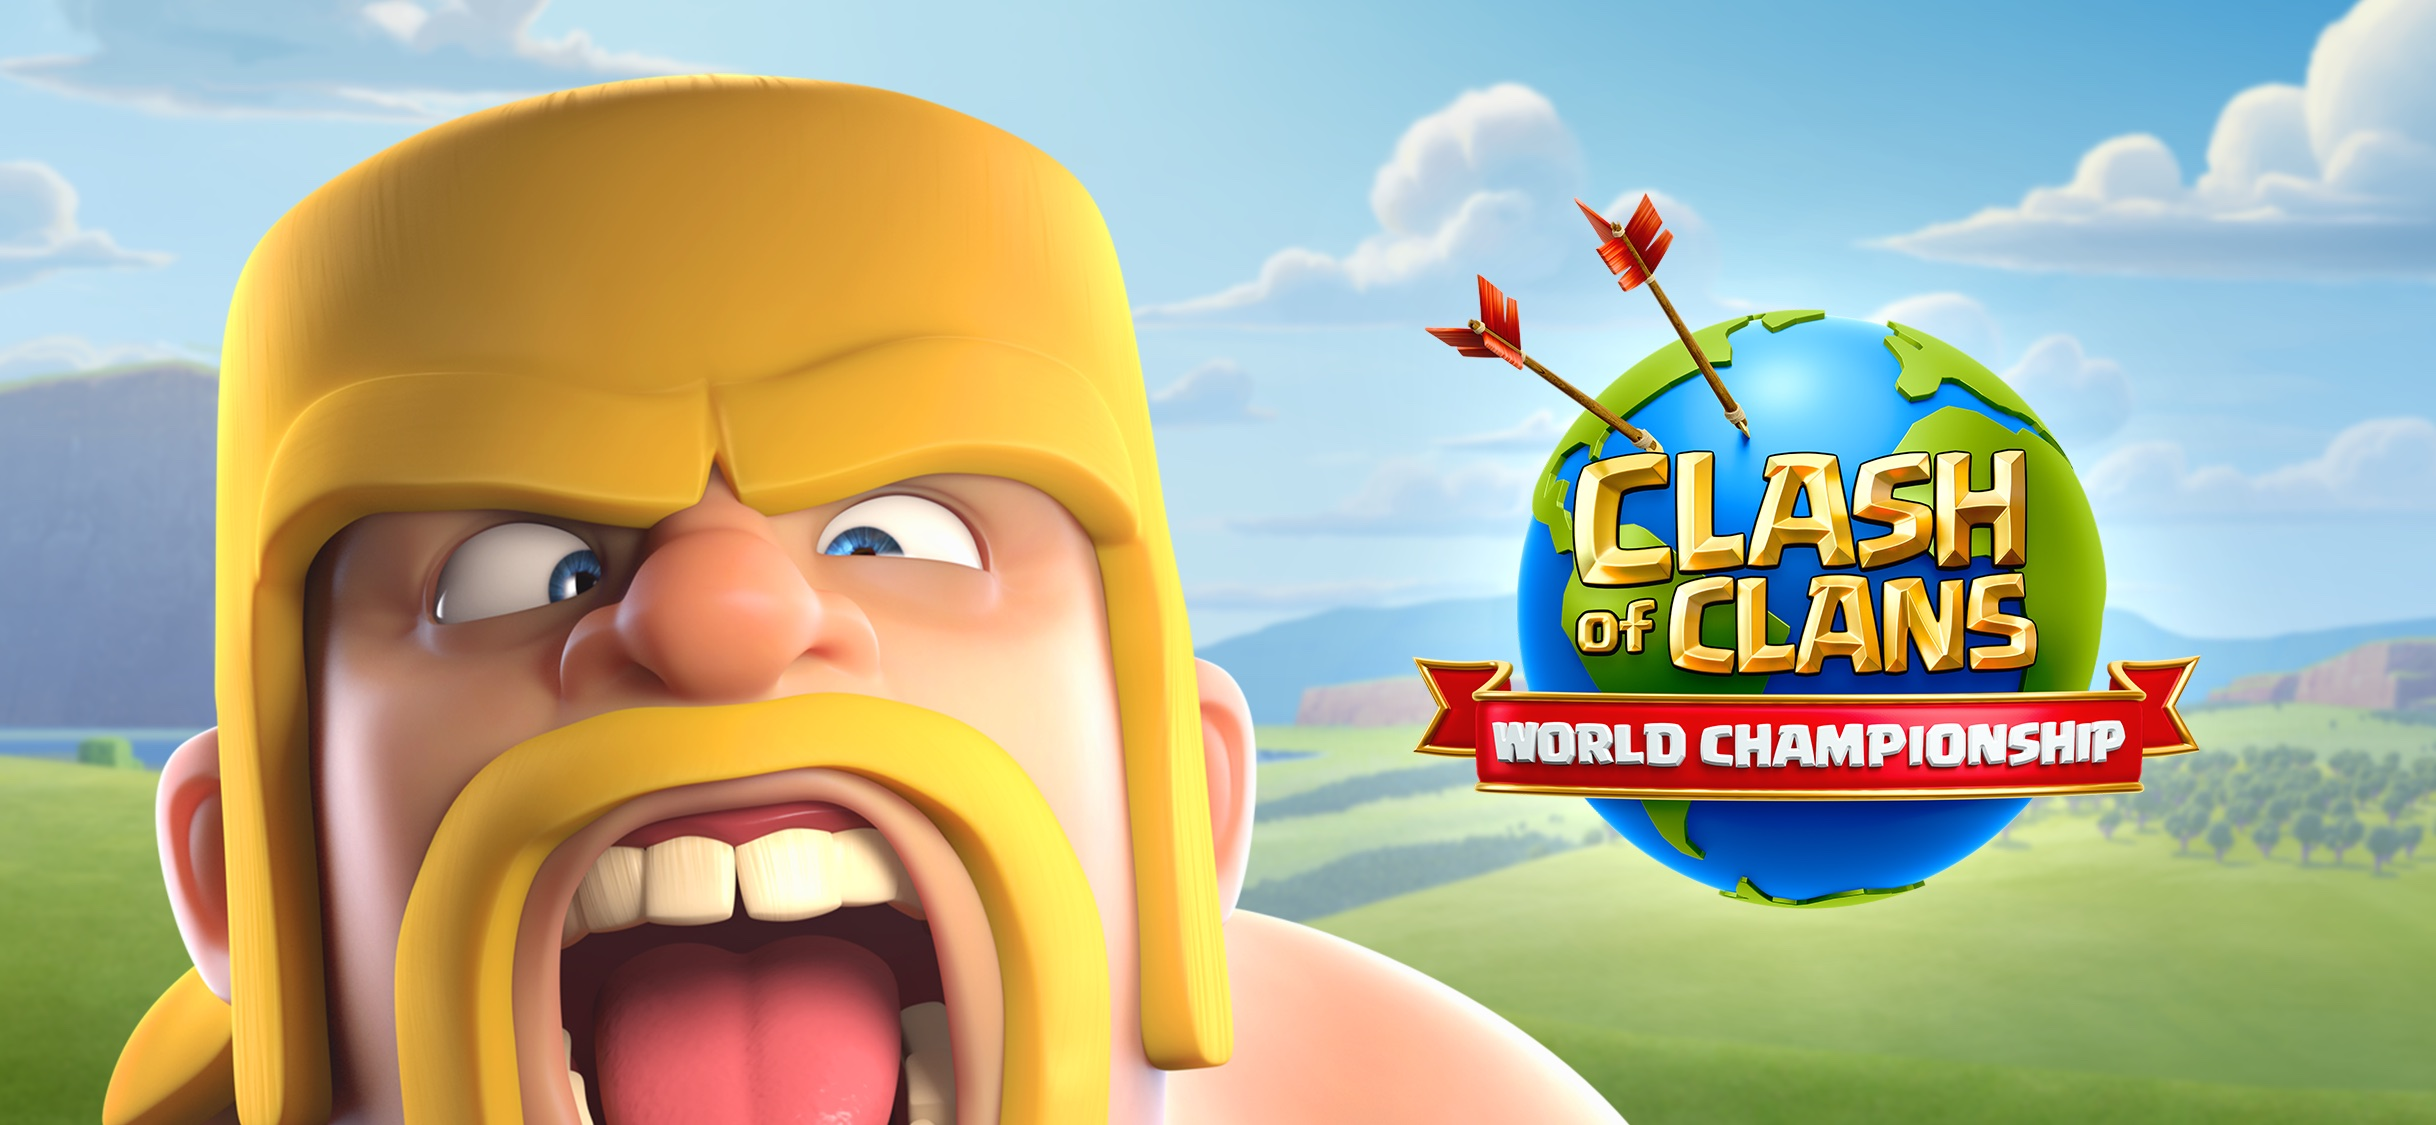 Clash of Clans World Championship 2019 Kicks Off × Supercell